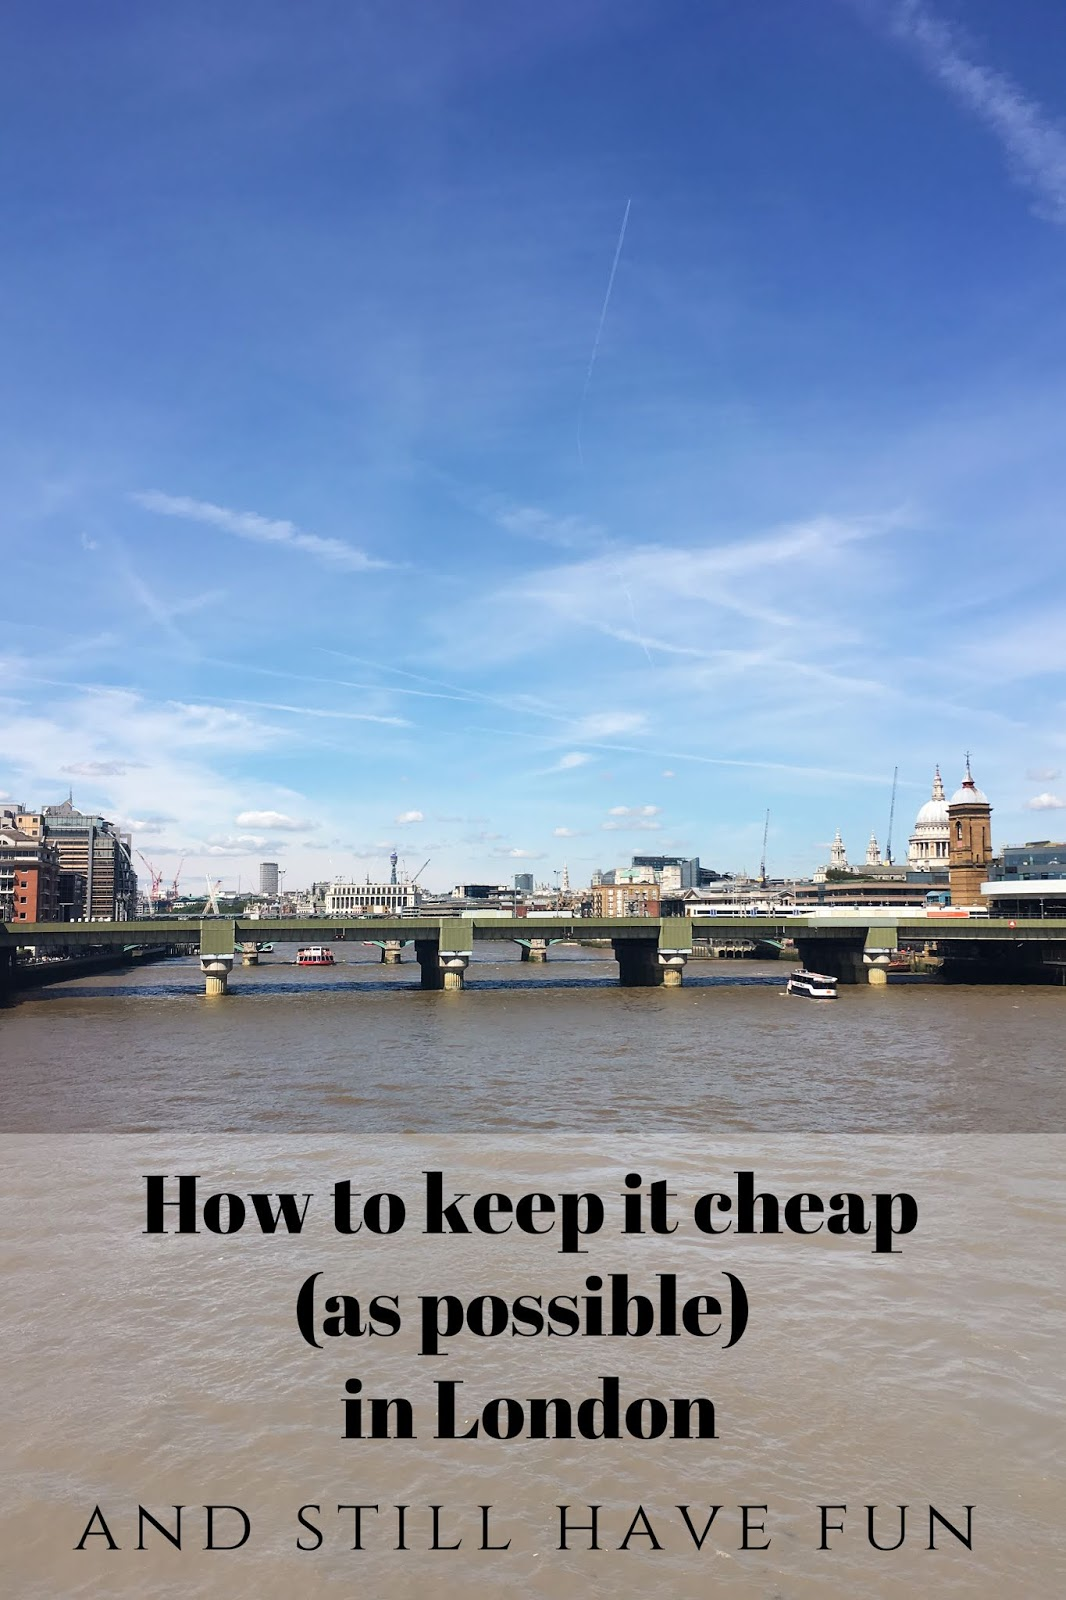 How To Keep It Cheap in London